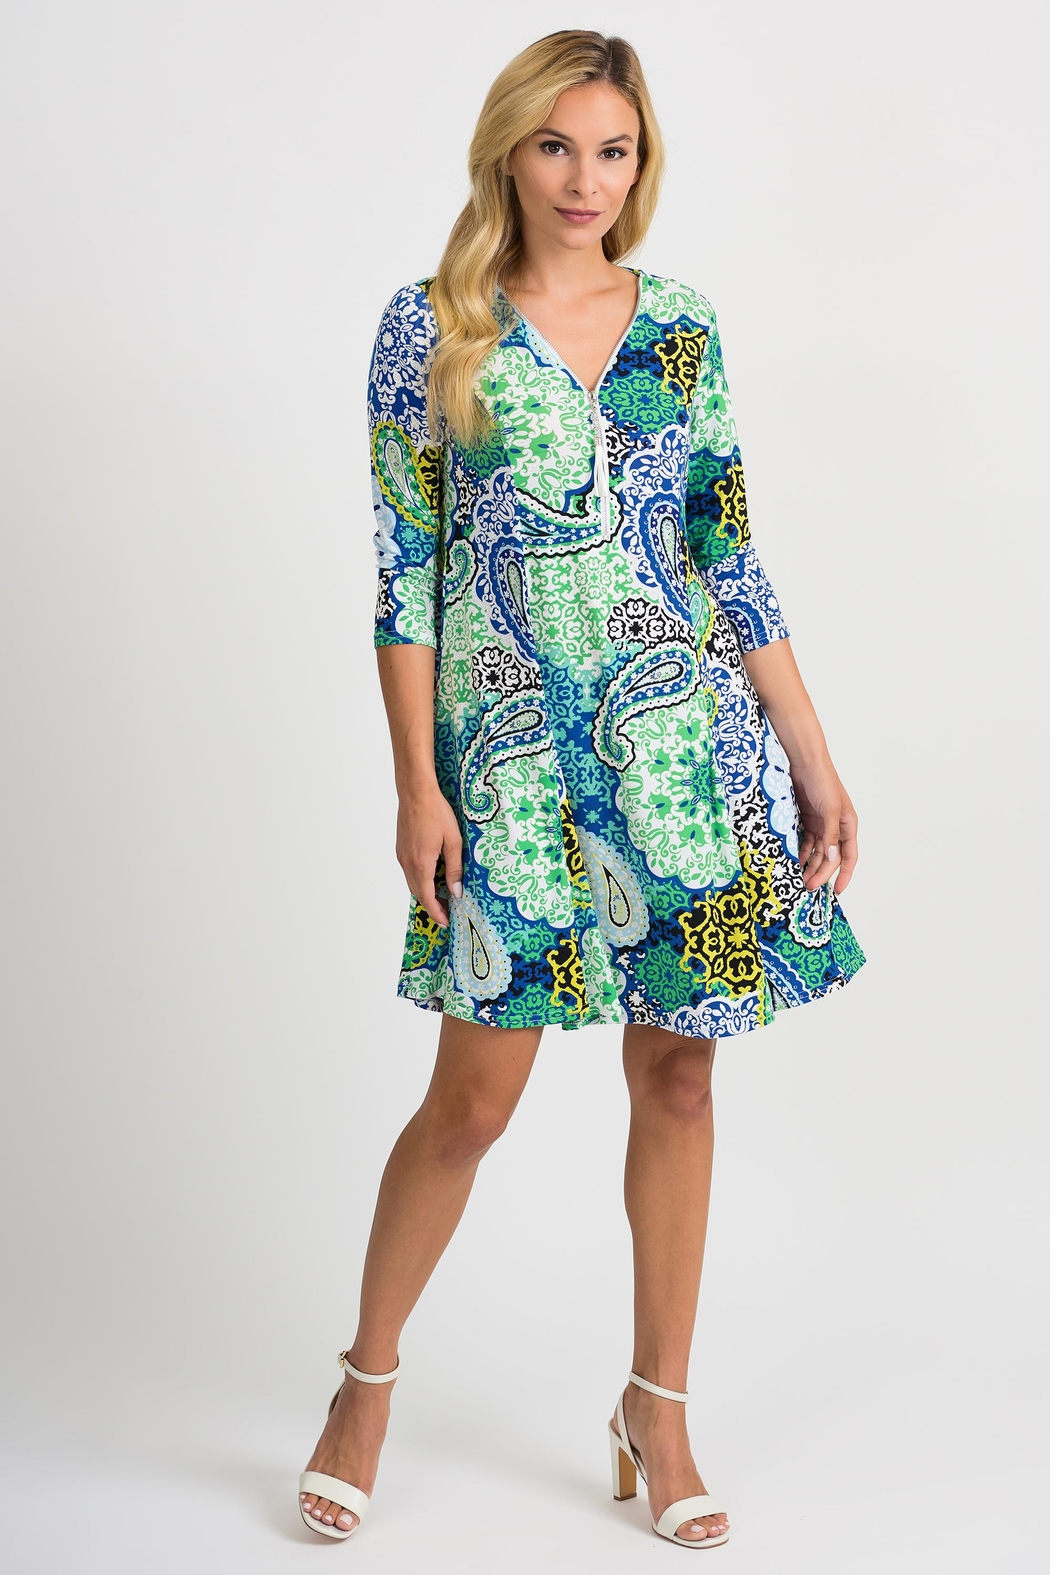 Joseph Ribkoff Crystal Printed Dress - Main Image